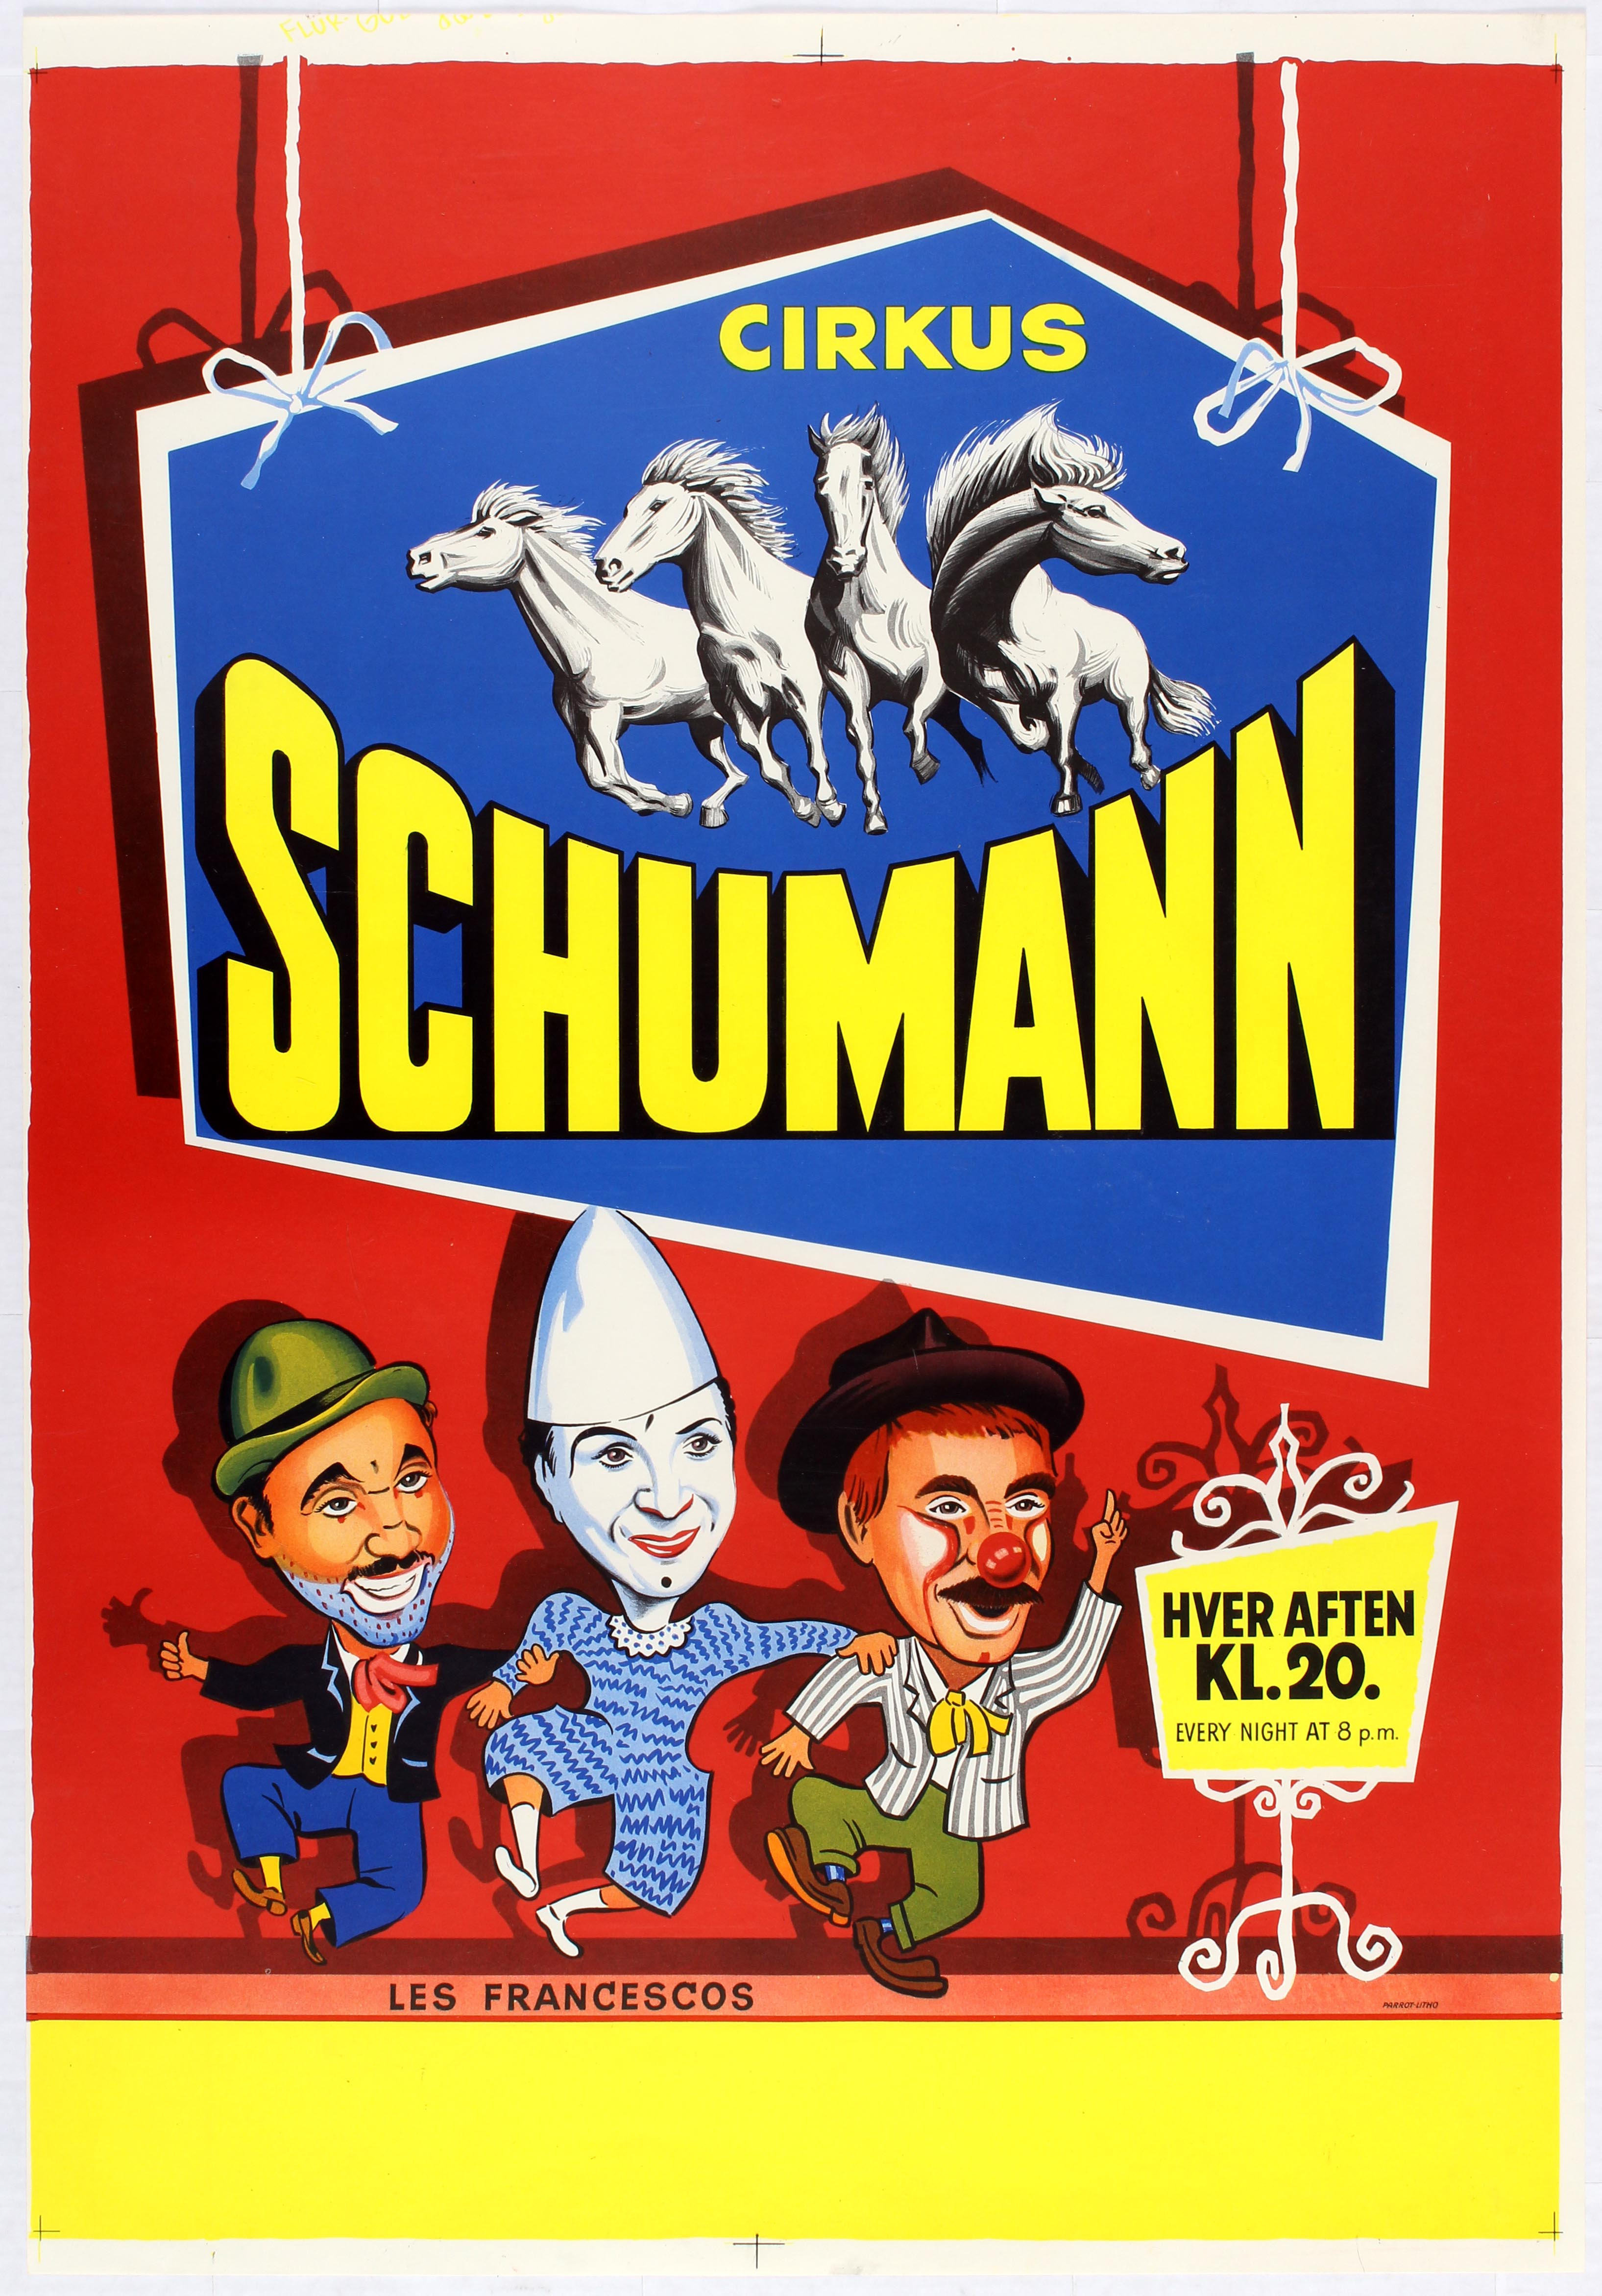 Advertising Poster Cirkus Schumann - Les Francescos